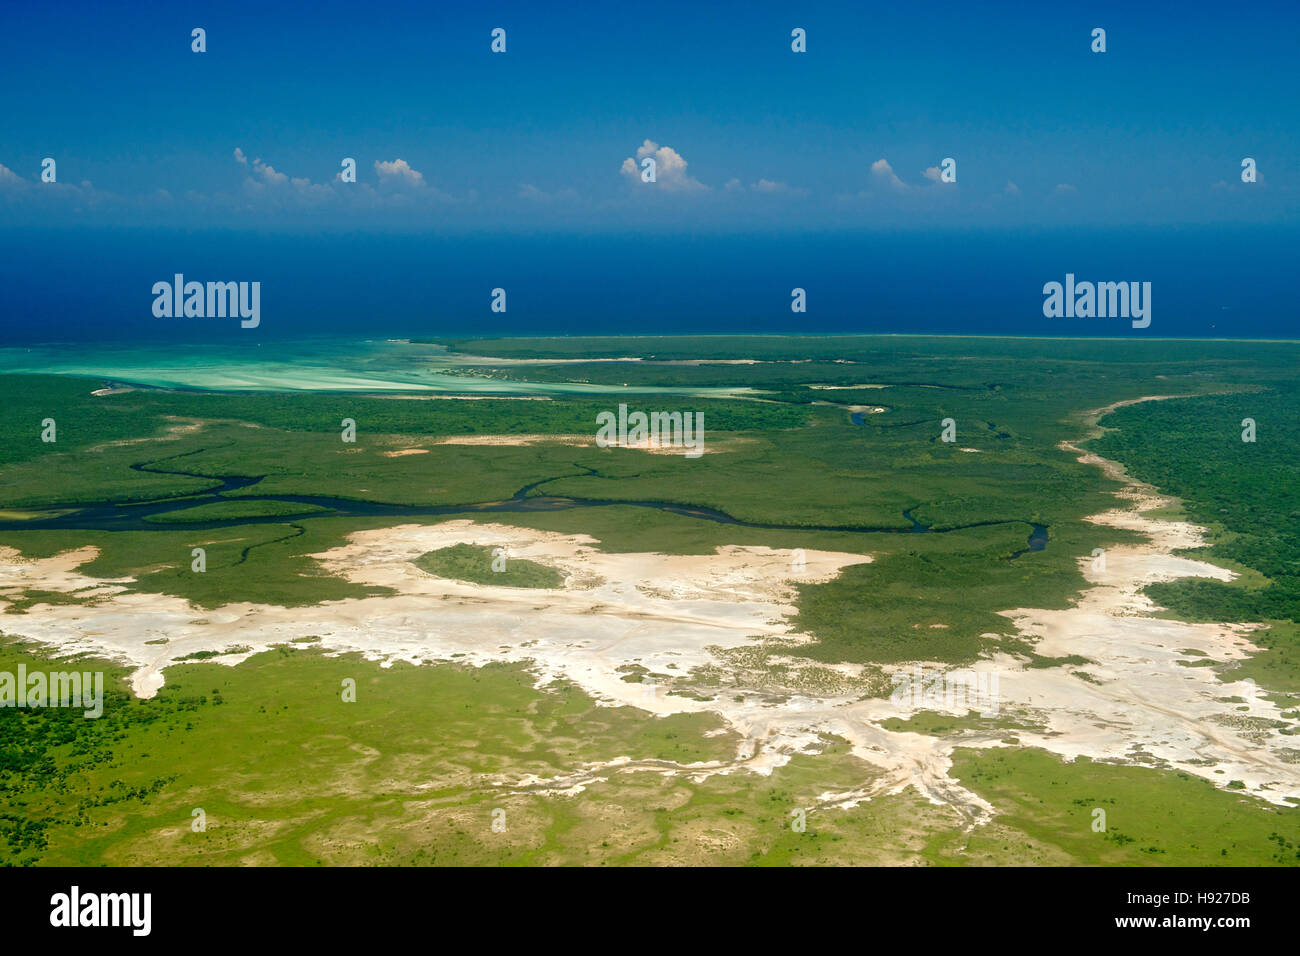 Mangroves along the coast of the Quirimbas National Park in Mozambique. Stock Photo